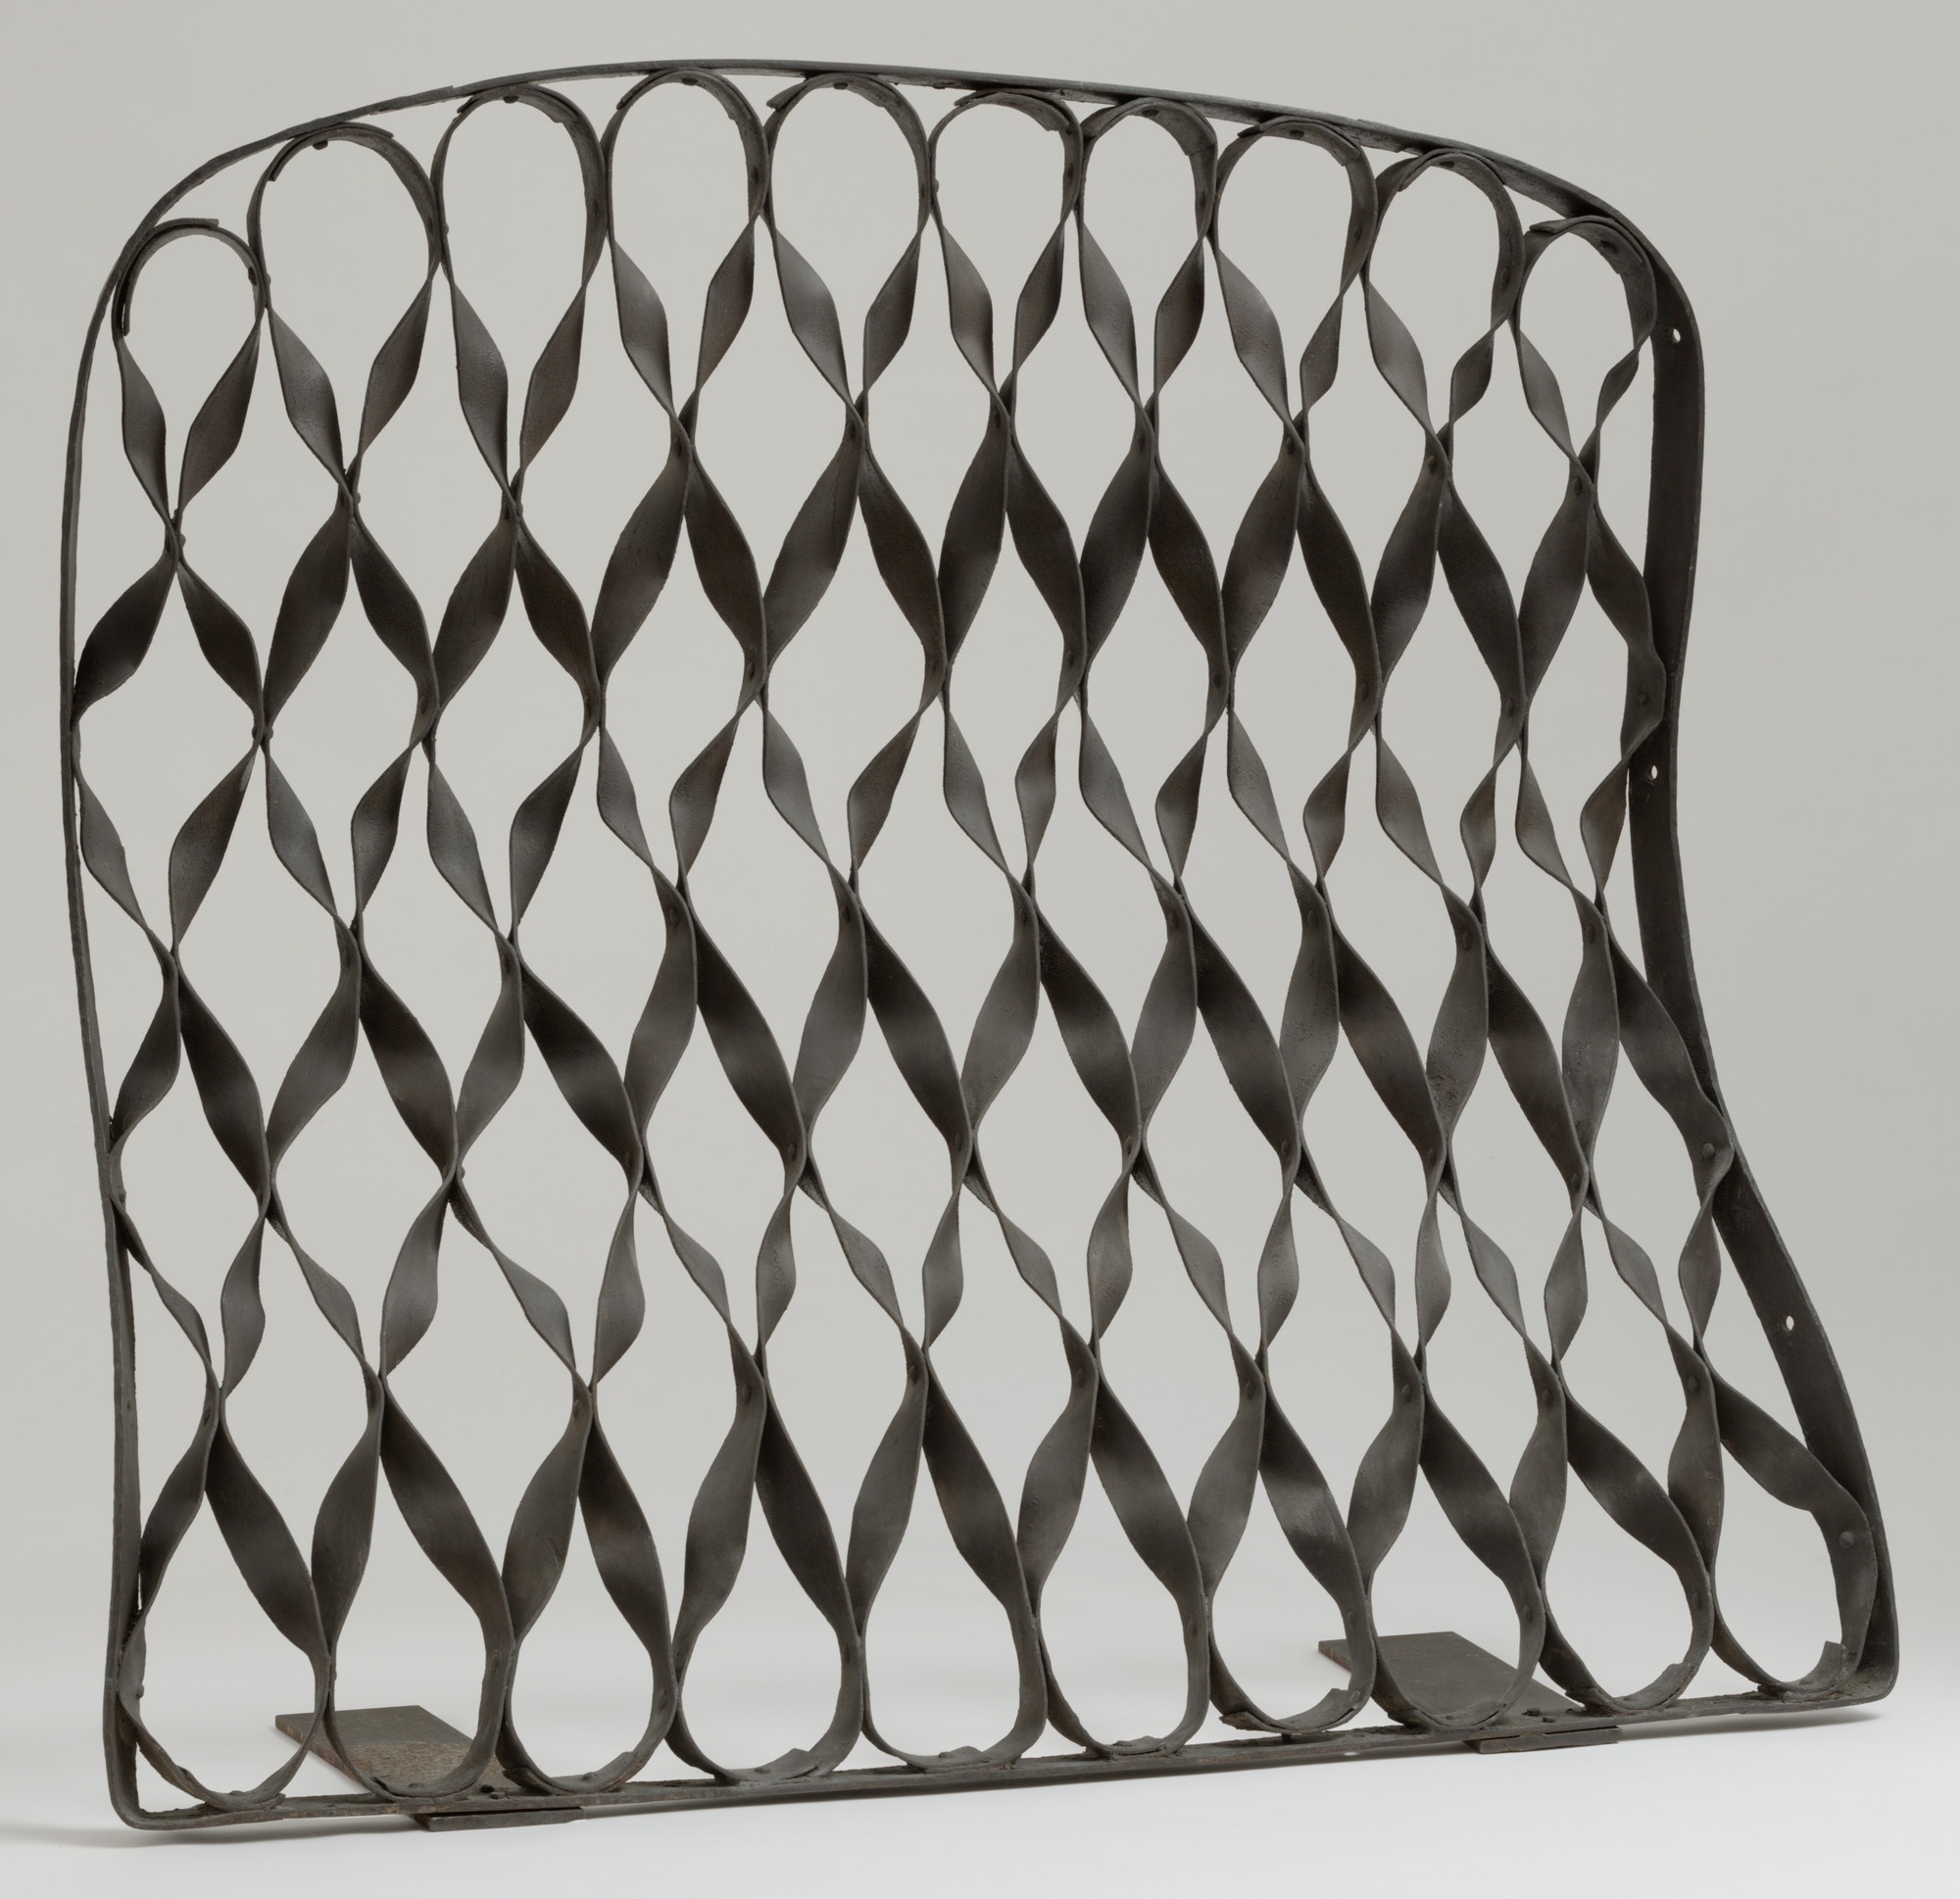 Antoni Gaudí. Grille from the Casa Milá (La Pedrera), Barcelona, Spain. 1906–1912